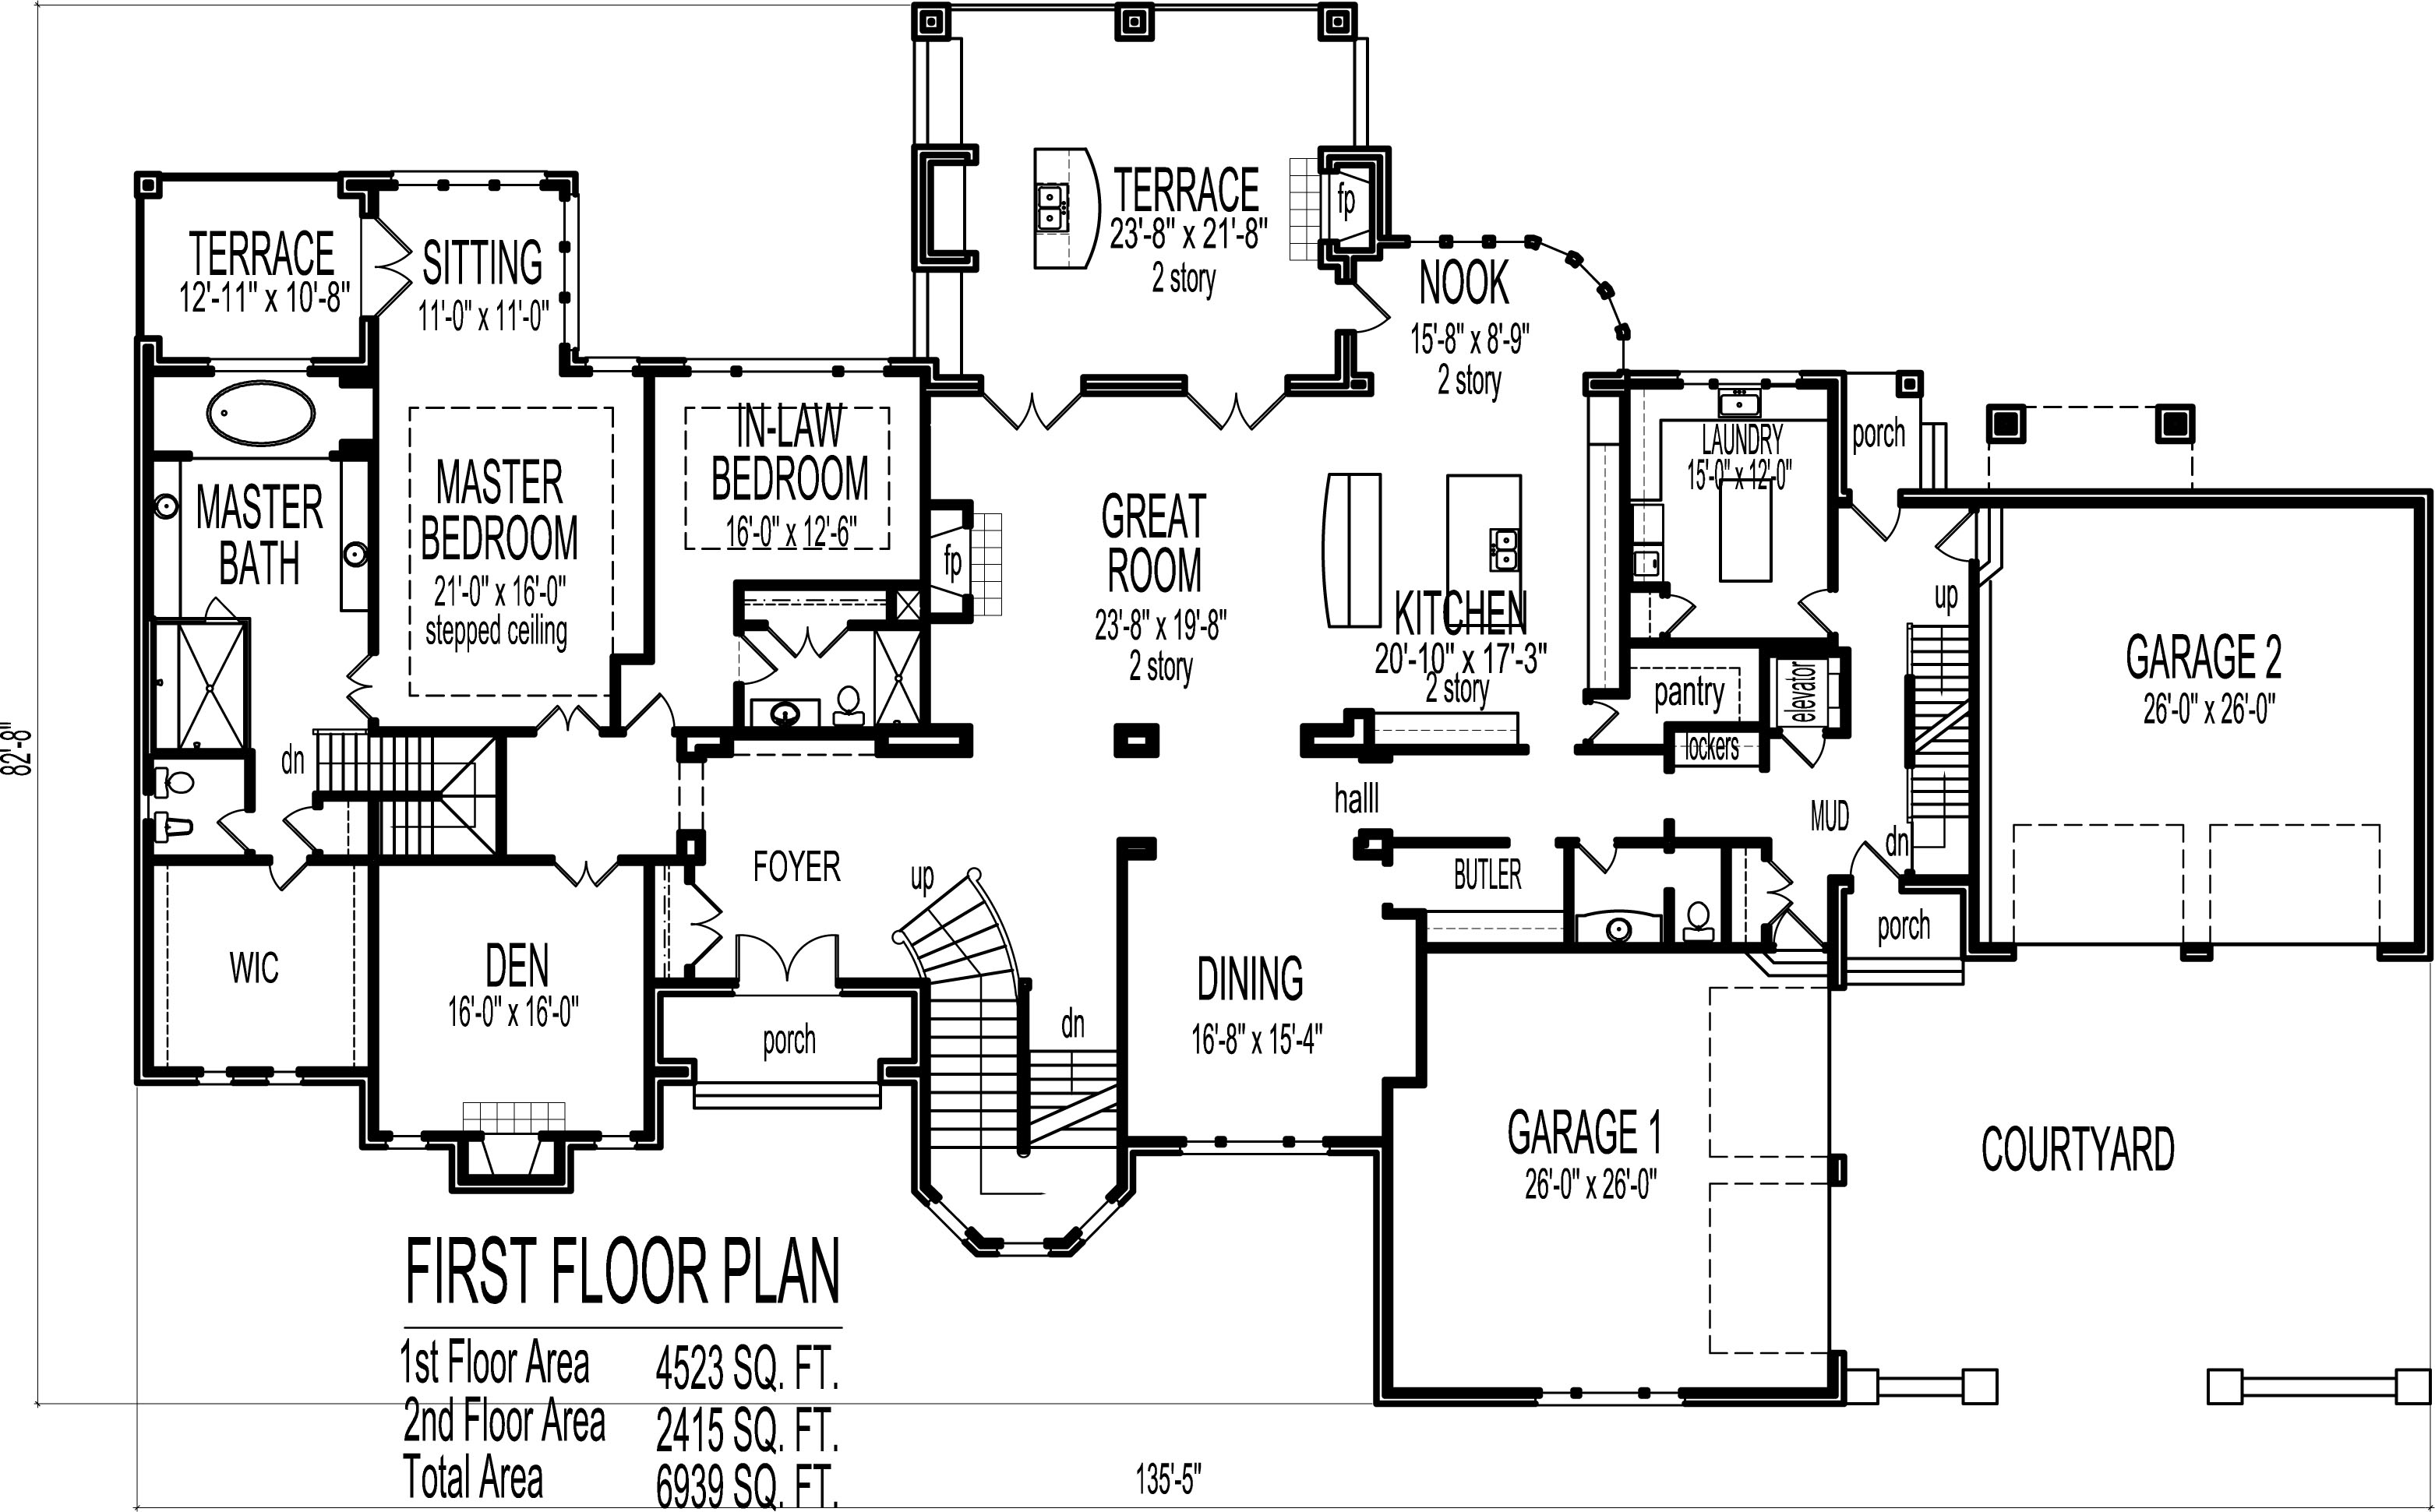 Architect Services Online House Plans Home DesignDecorating